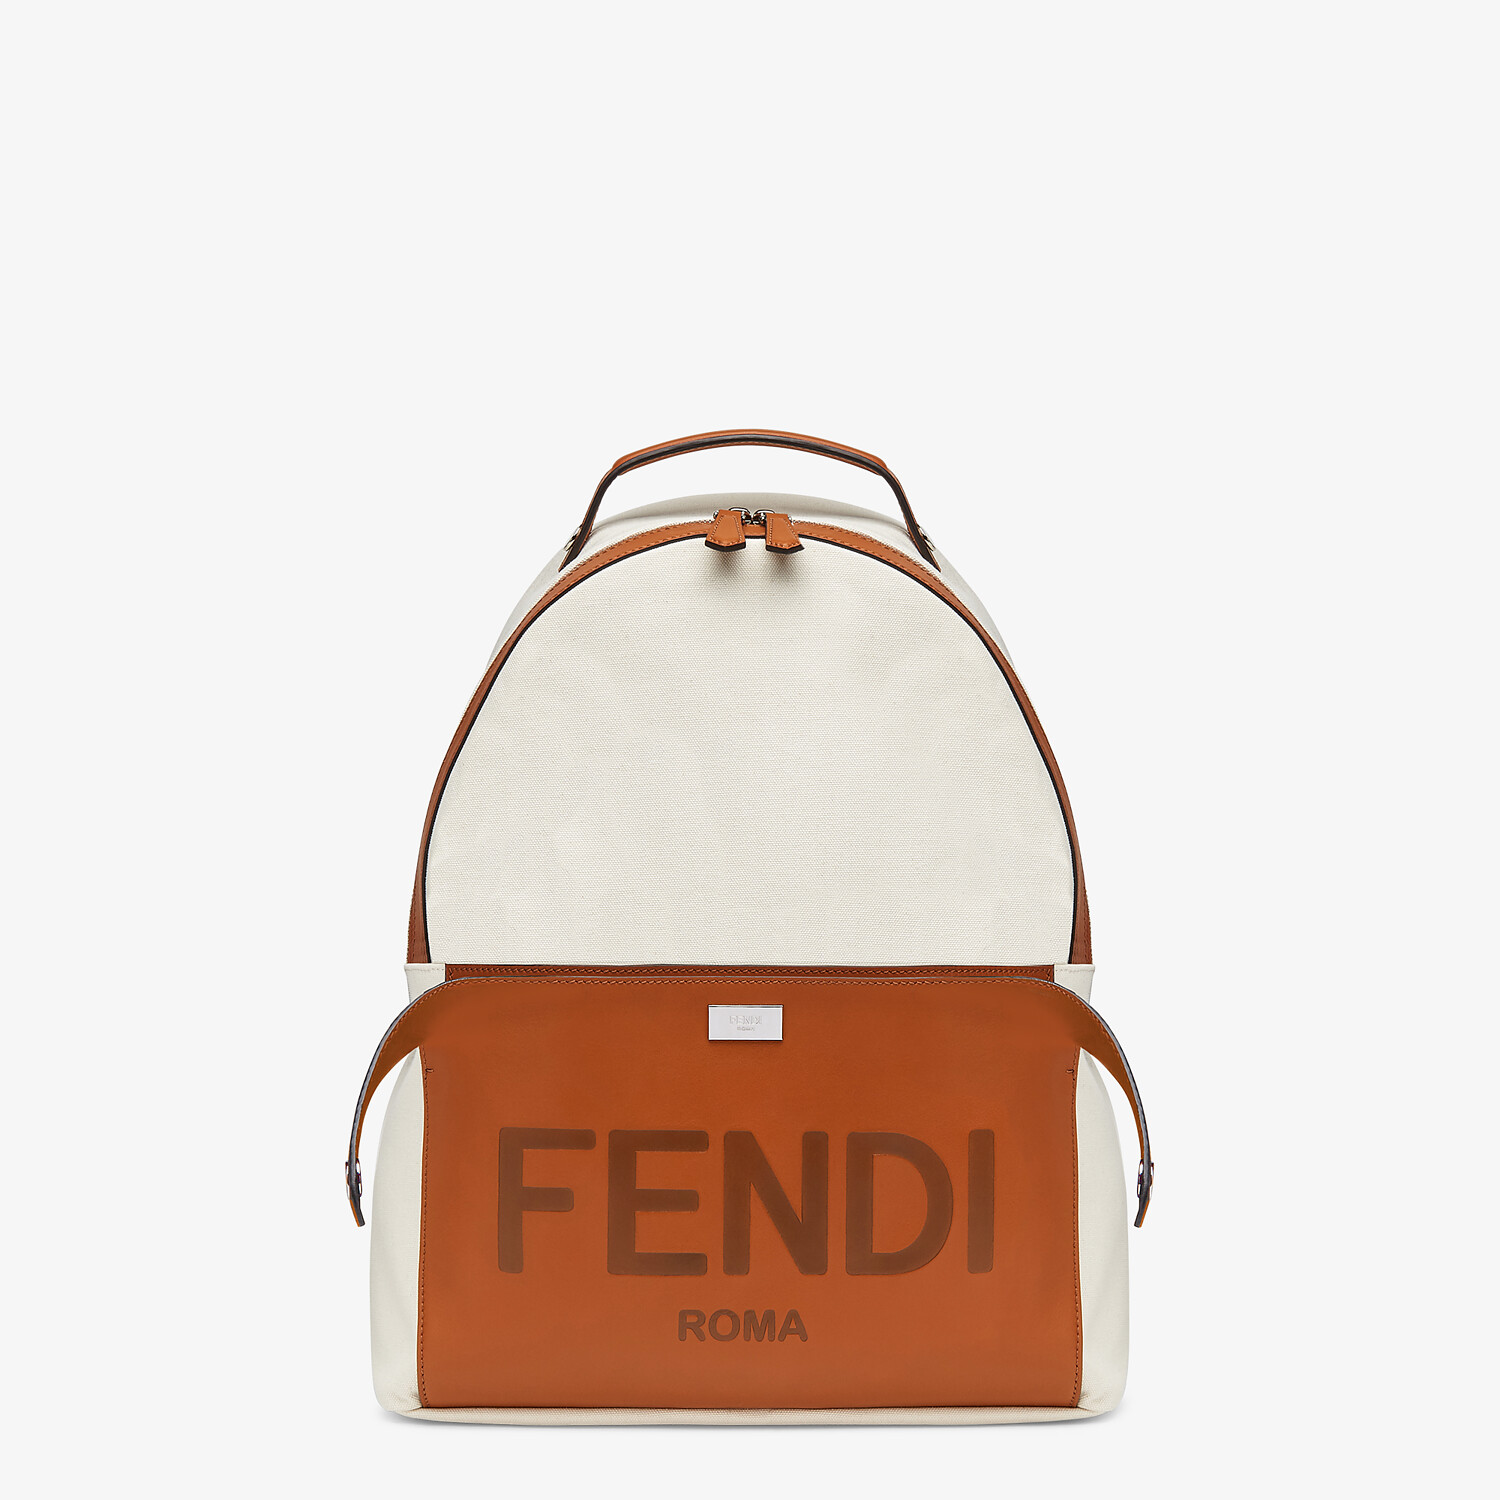 FENDI ESSENTIAL BACKPACK - Undyed canvas backpack - view 1 detail